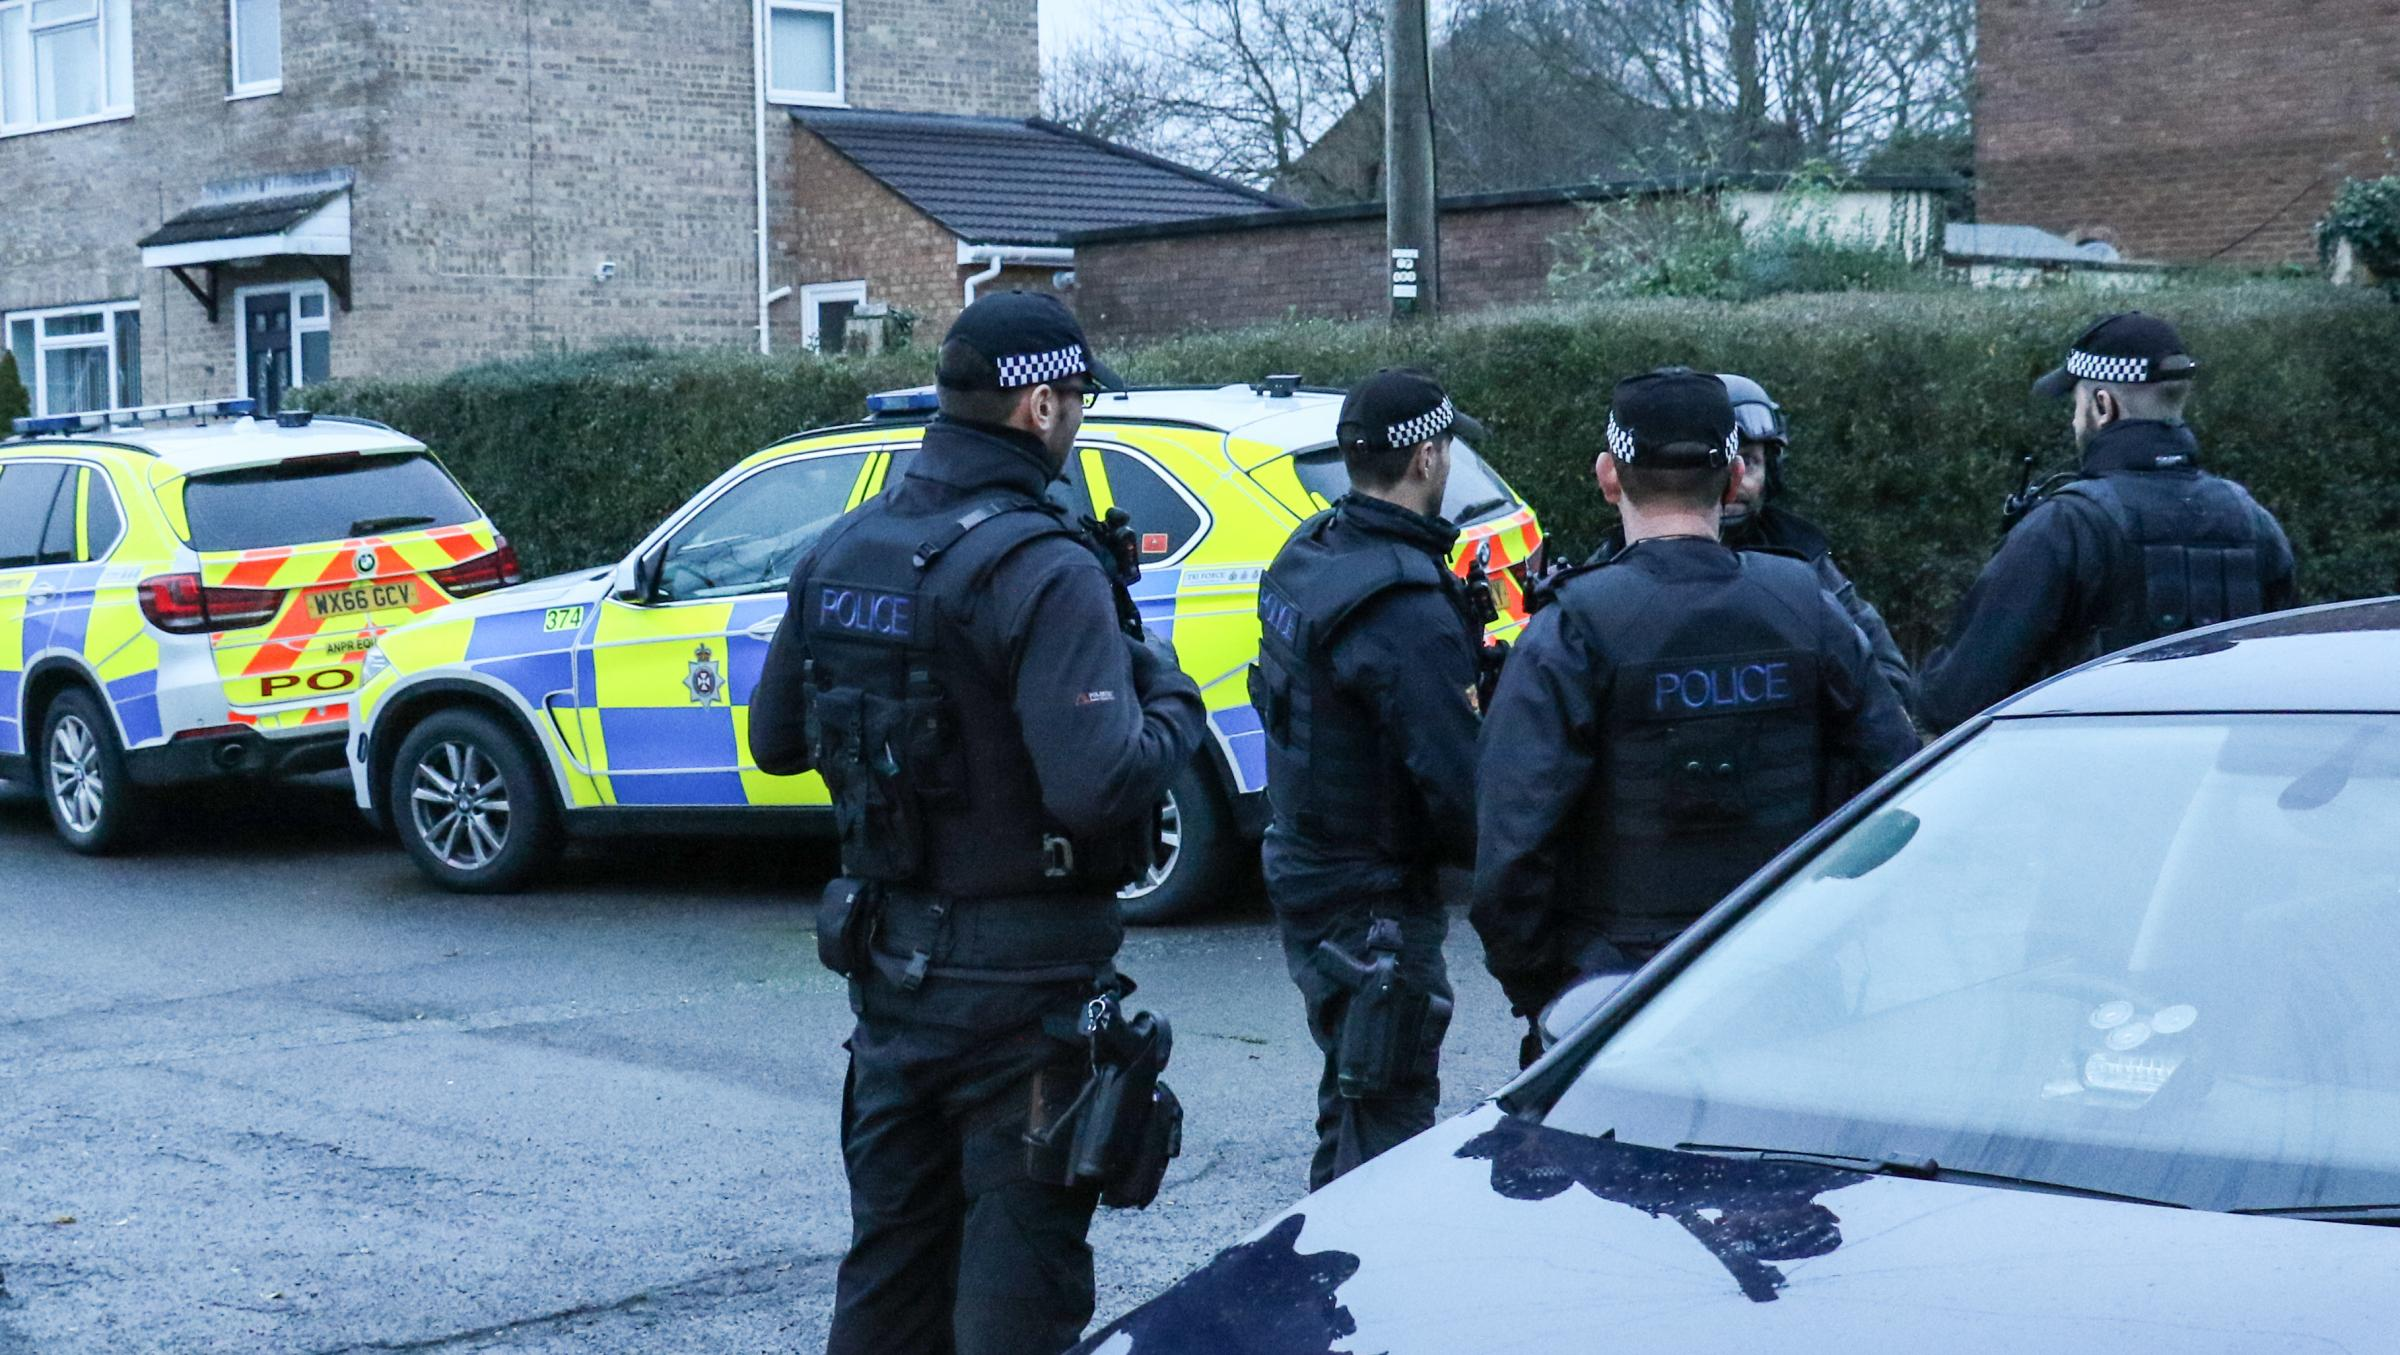 Armed police called after woman, 70, threatened officers with knives and gun, court hears